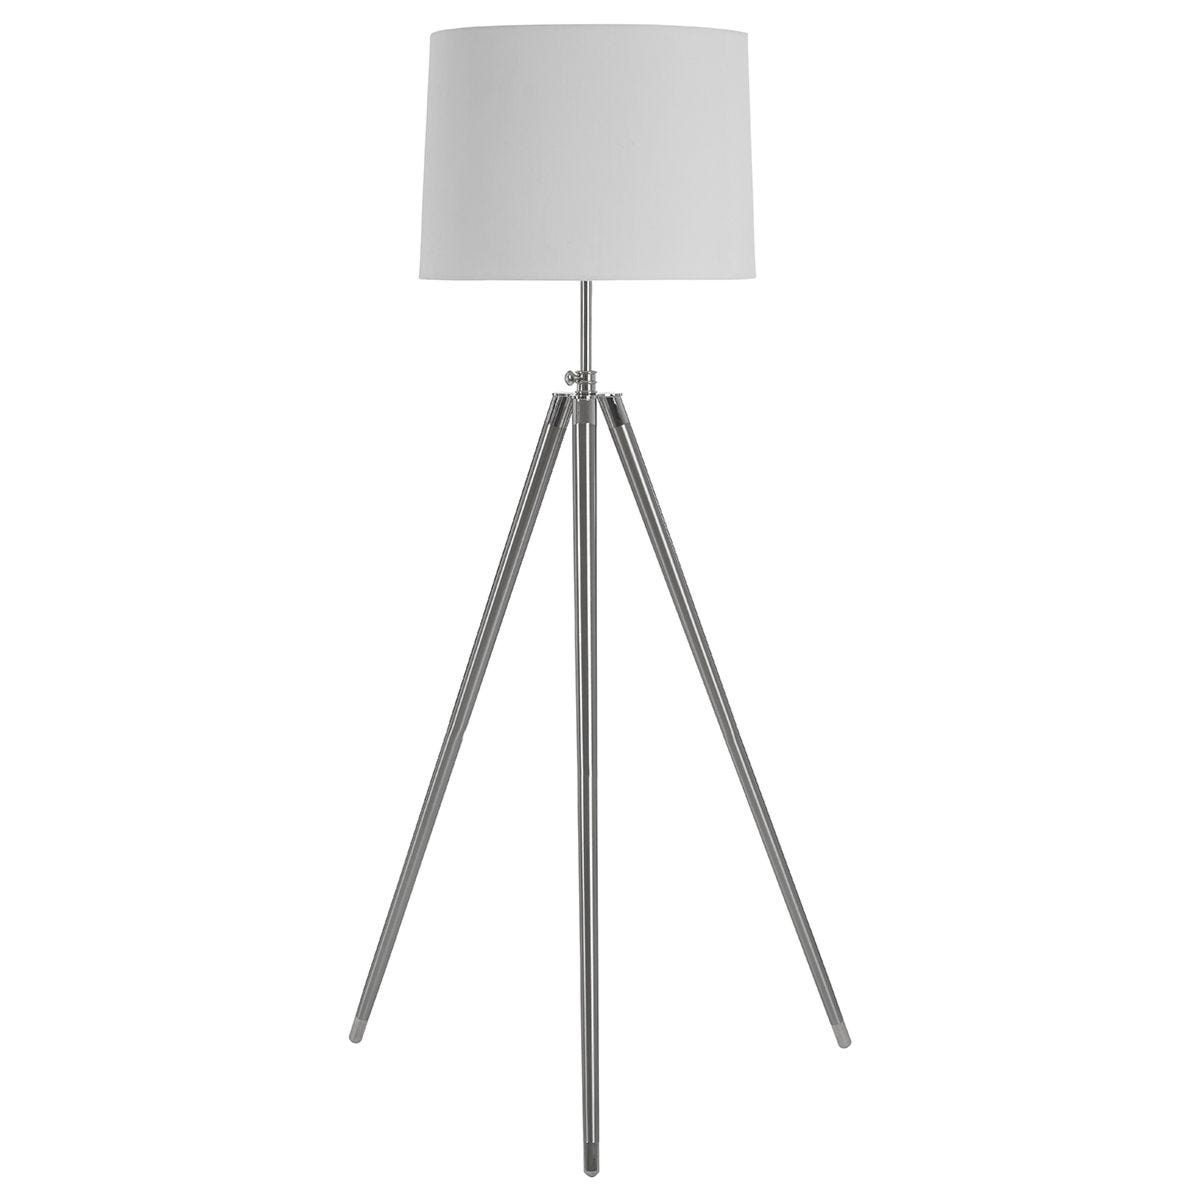 Premier Housewares Unique Tripod Floor Lamp With Cream Shade Robert Dyas